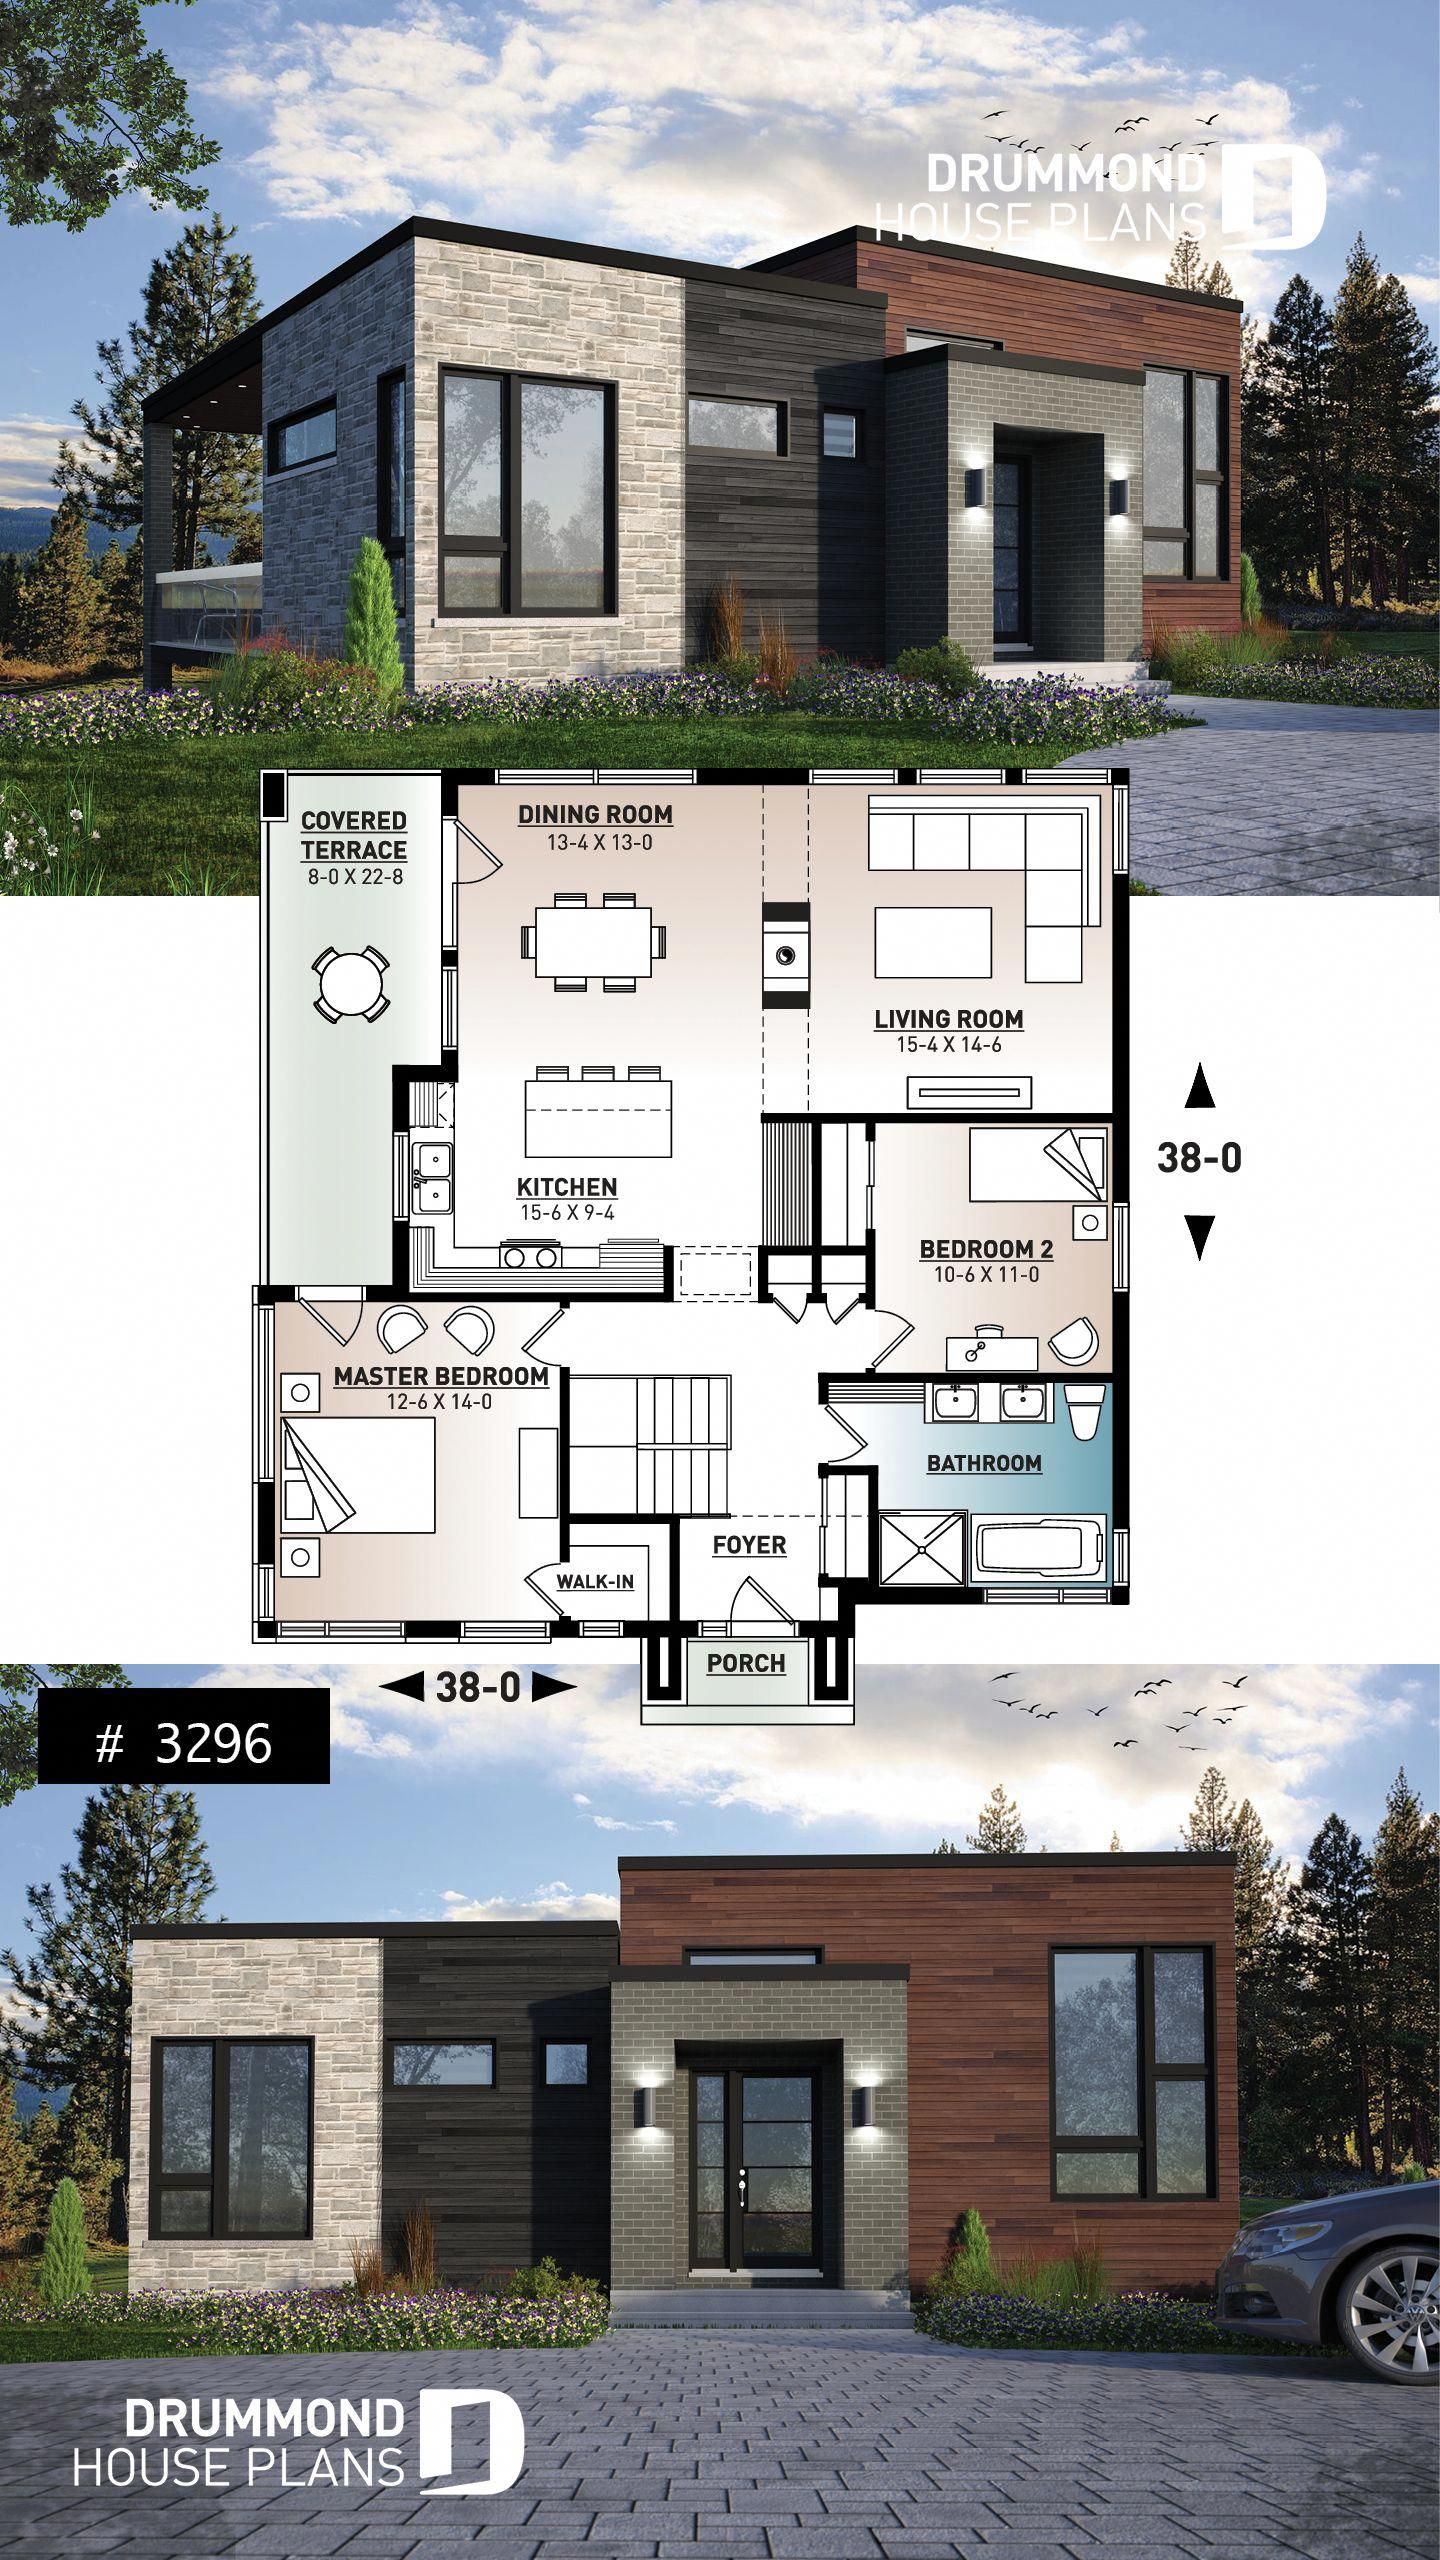 Modern Economical Bungalow With Walkout Basement 2 Bedroom And Central Fireplace 3296 Best Bungalow House Design Modern Bungalow House Basement House Plans